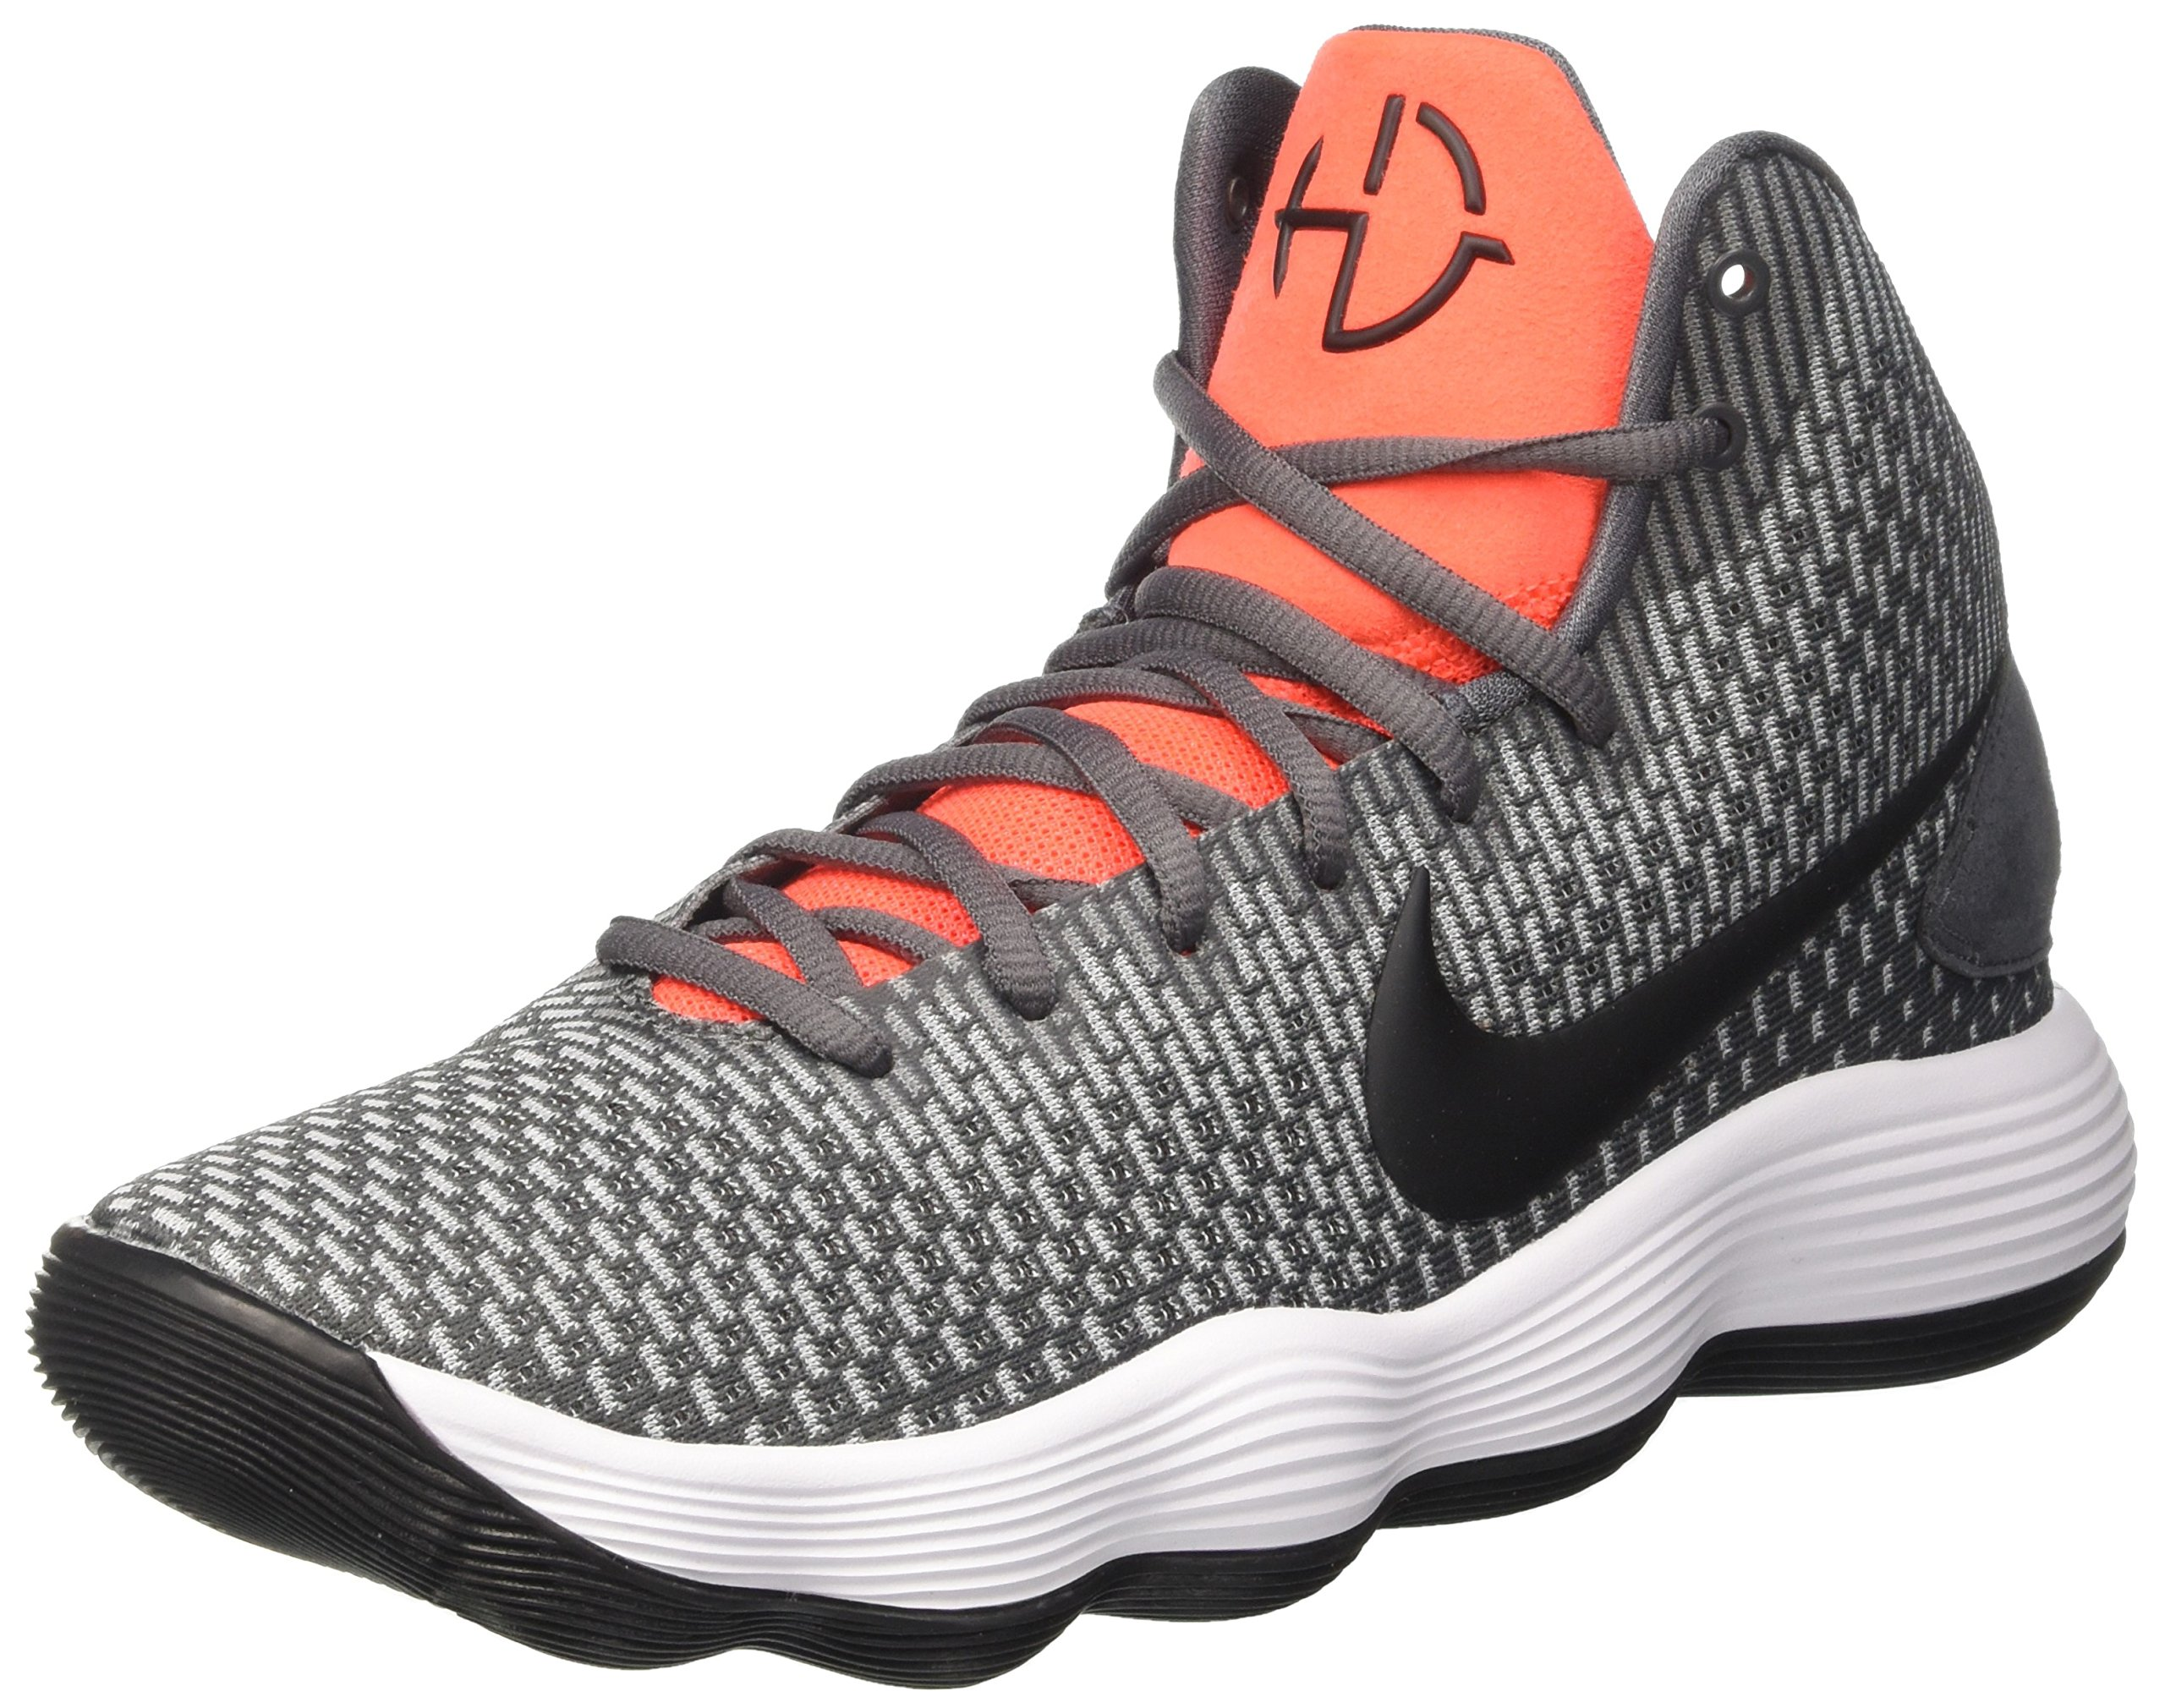 47c33892782c Galleon - NIKE Men s Hyperdunk 2017 Basketball Shoe Dark Grey Black Bright  Crimson Size 10 M US